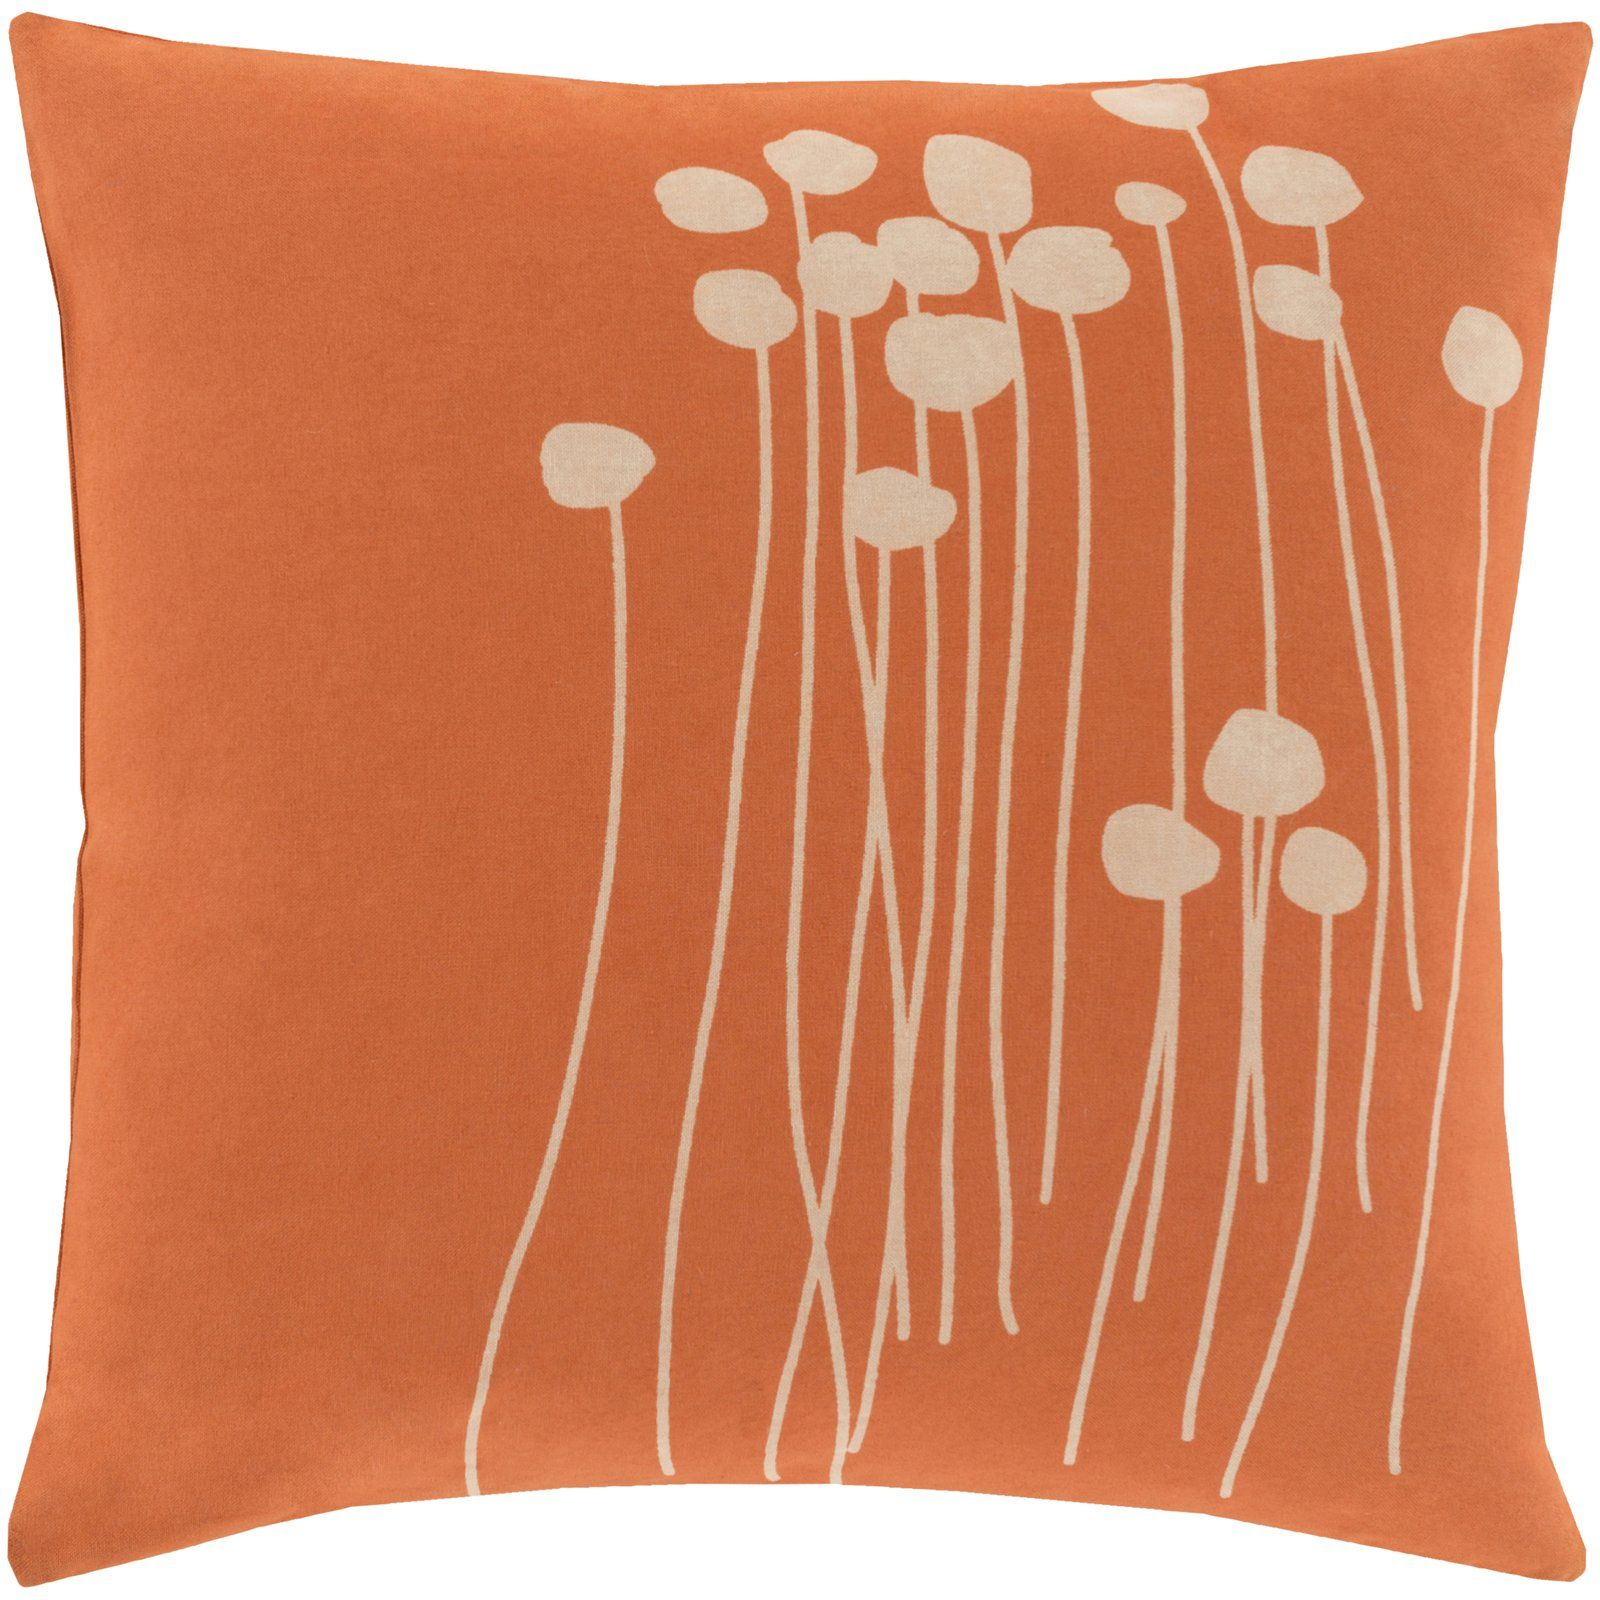 Fayette Cotton Down Floral Throw Pillow Insert Floral Throw Pillows Throw Pillows Flower Throw Pillows